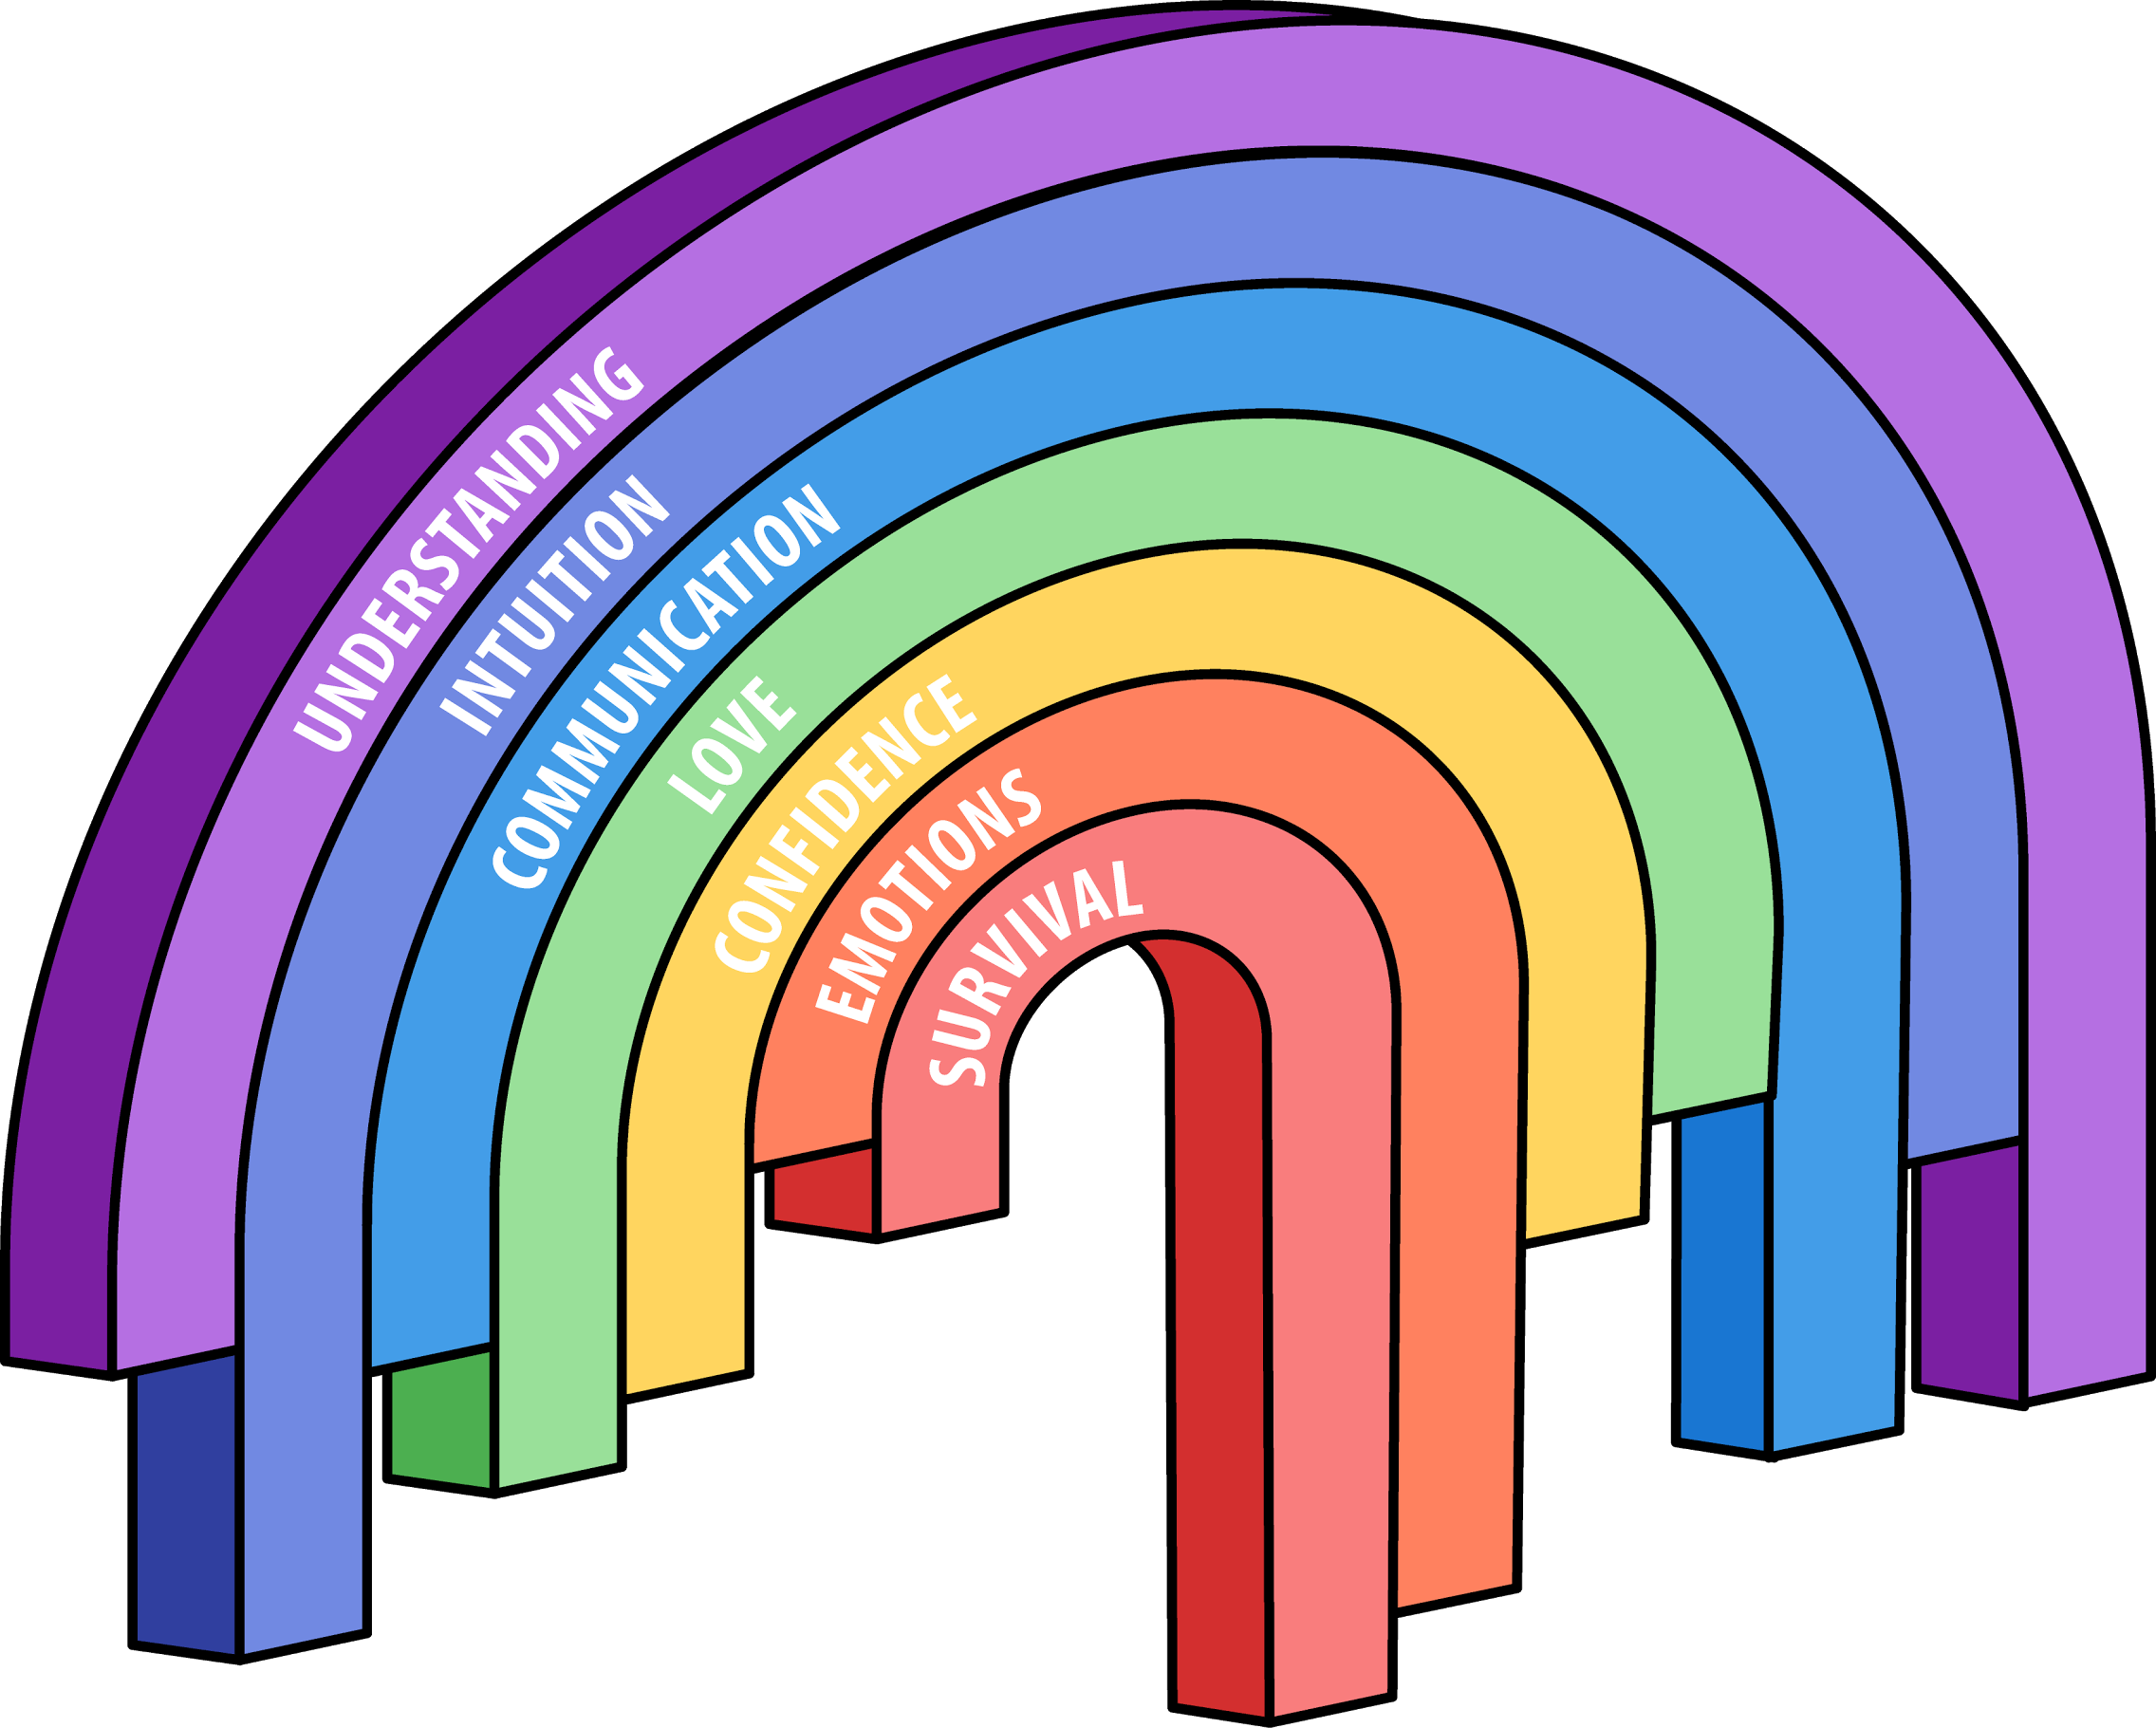 Chakratic Hierarchy of Needs